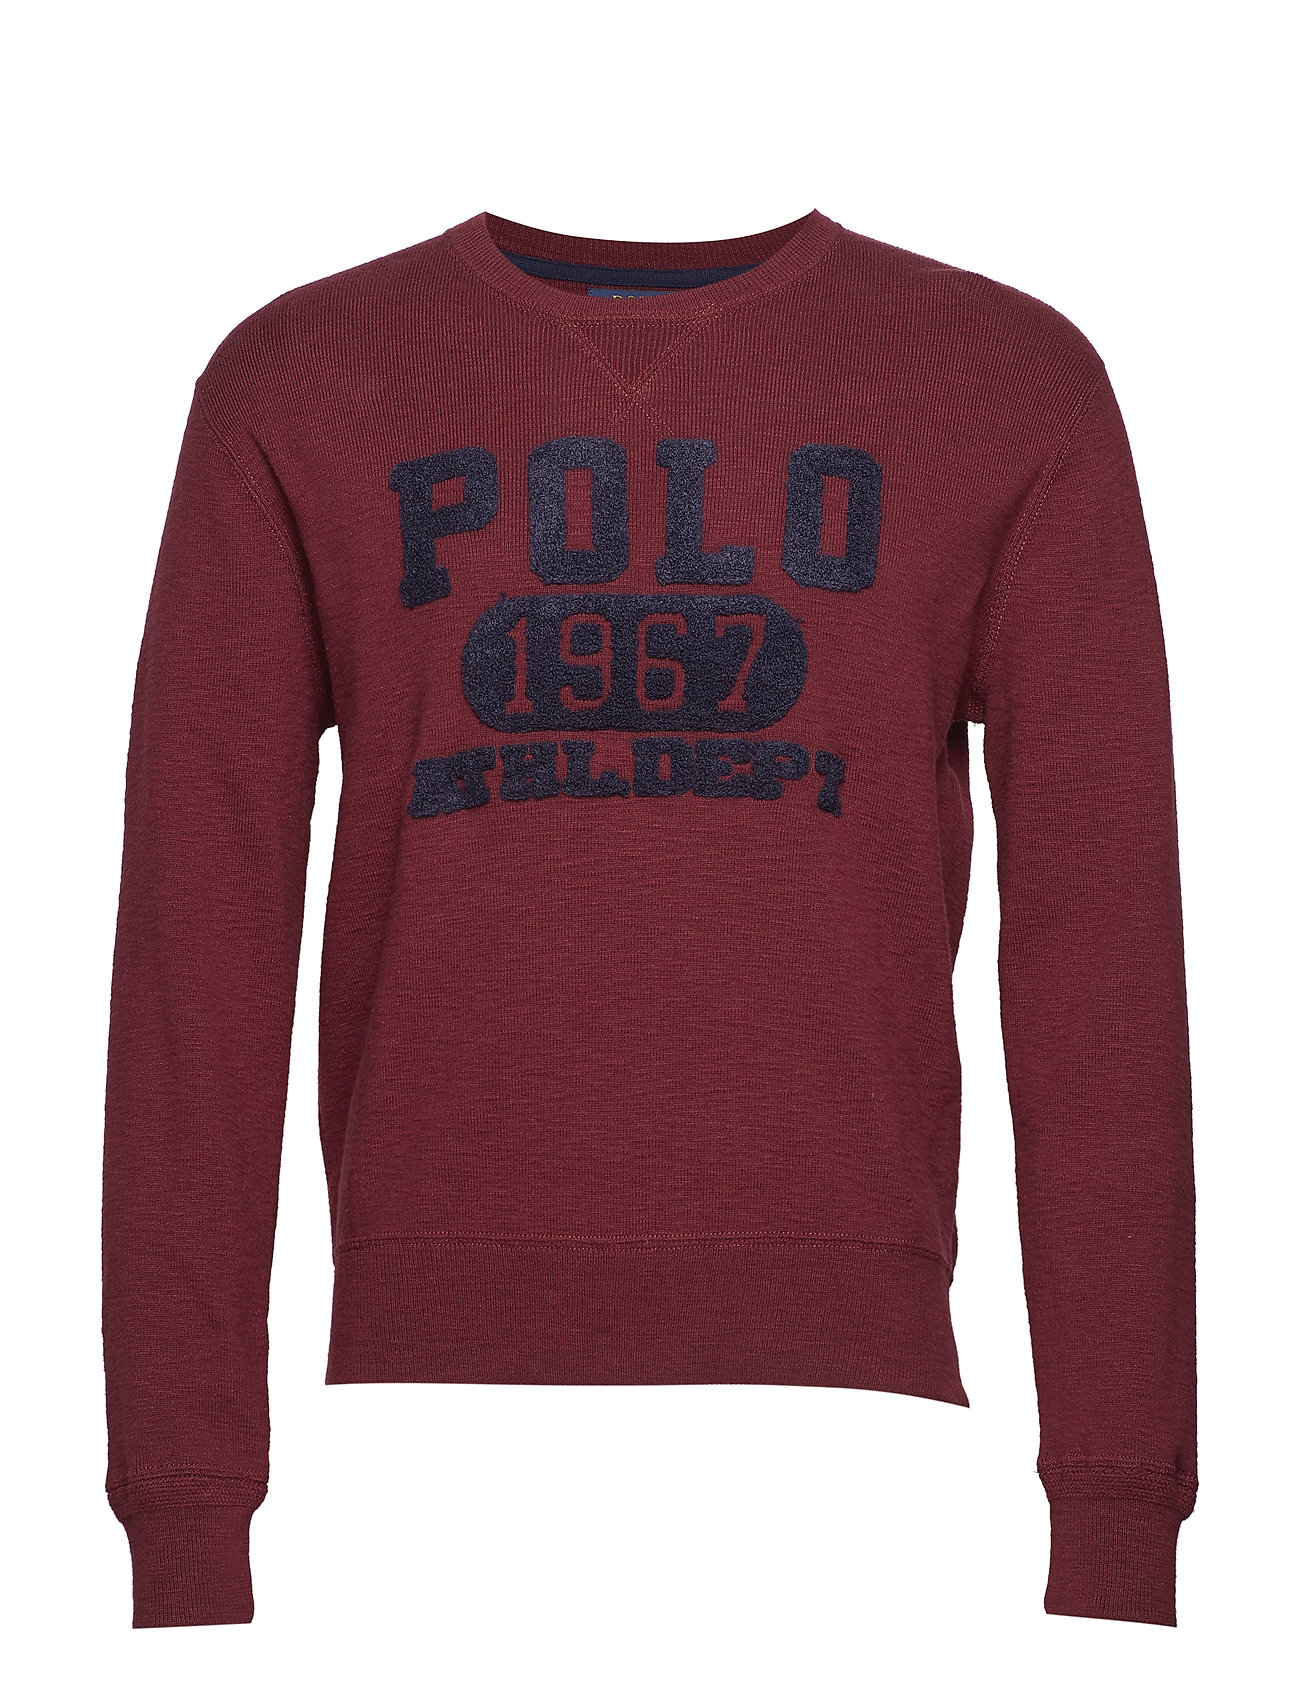 Polo Ralph Lauren Cotton Graphic Sweater